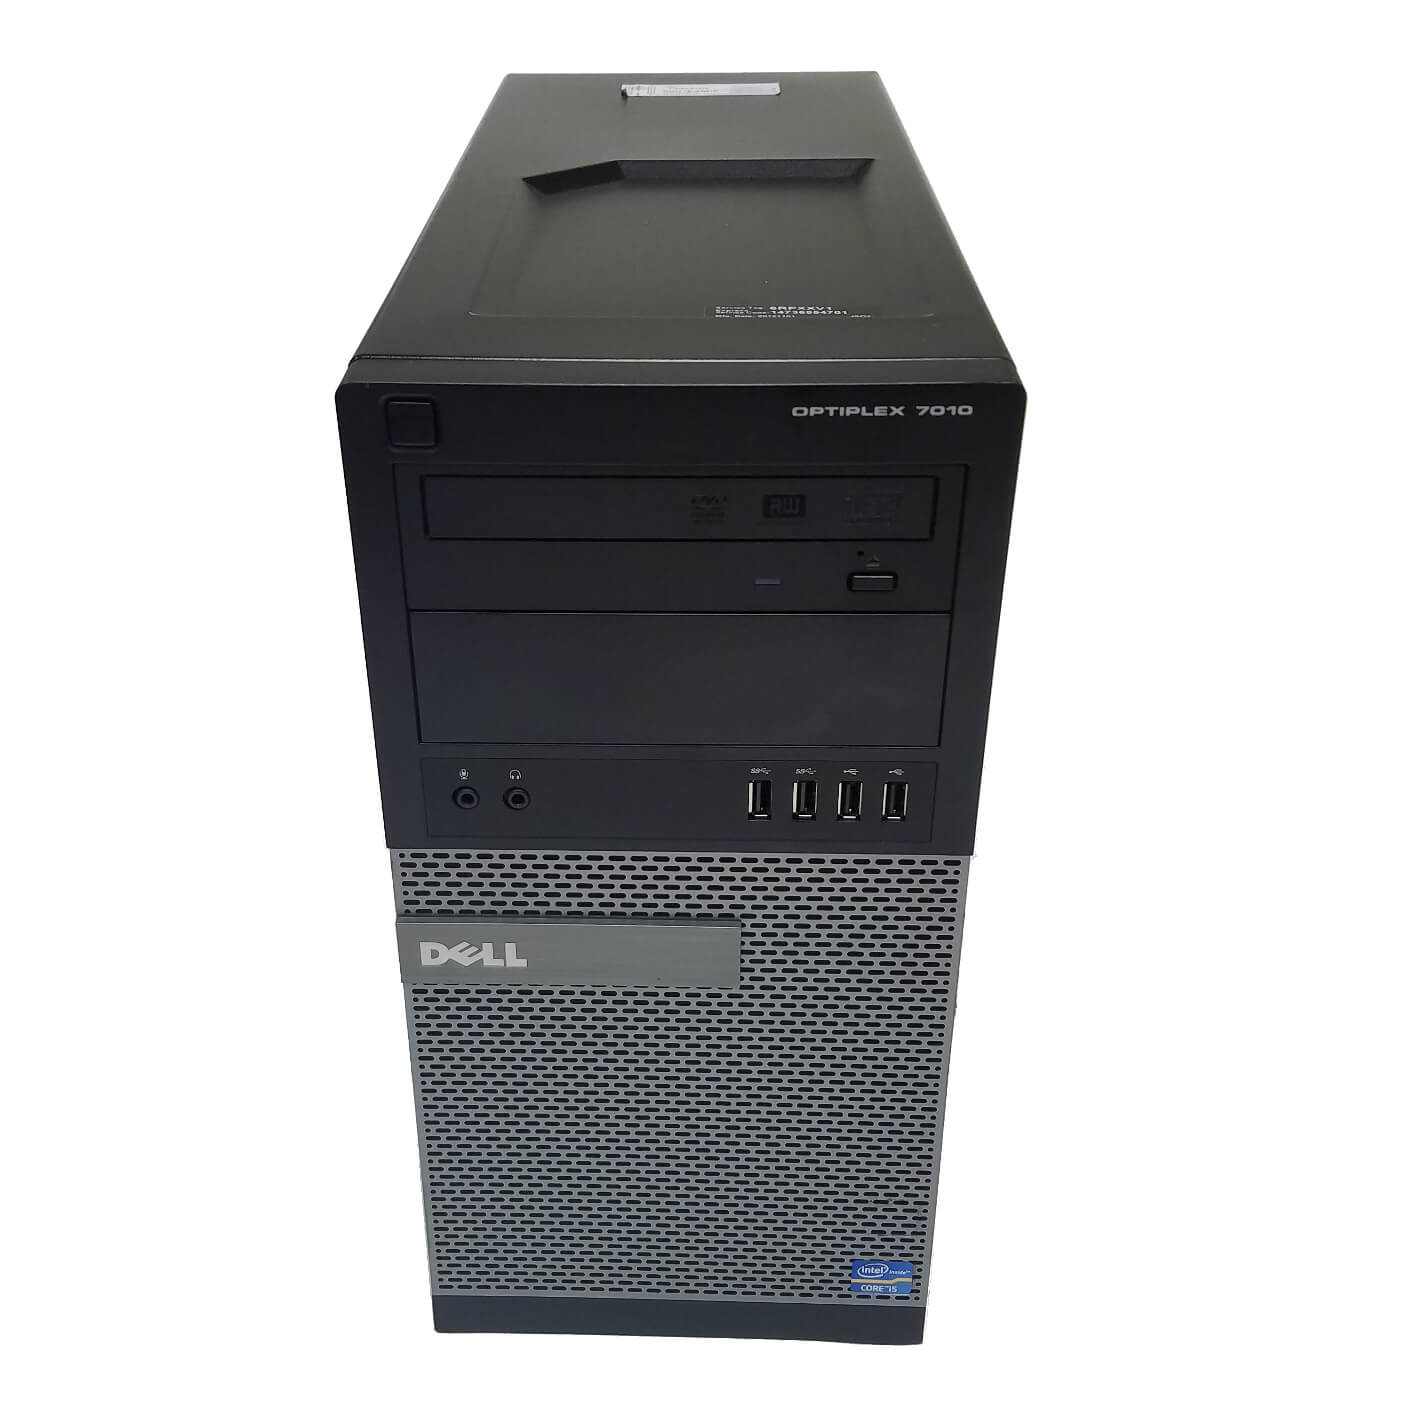 DELL 7010 TOWER I5-3470 3,2 / 8192 MB DDR3 / 120 SSD NOWY + 500 GB / DVD-RW / WINDOWS 10 PRO